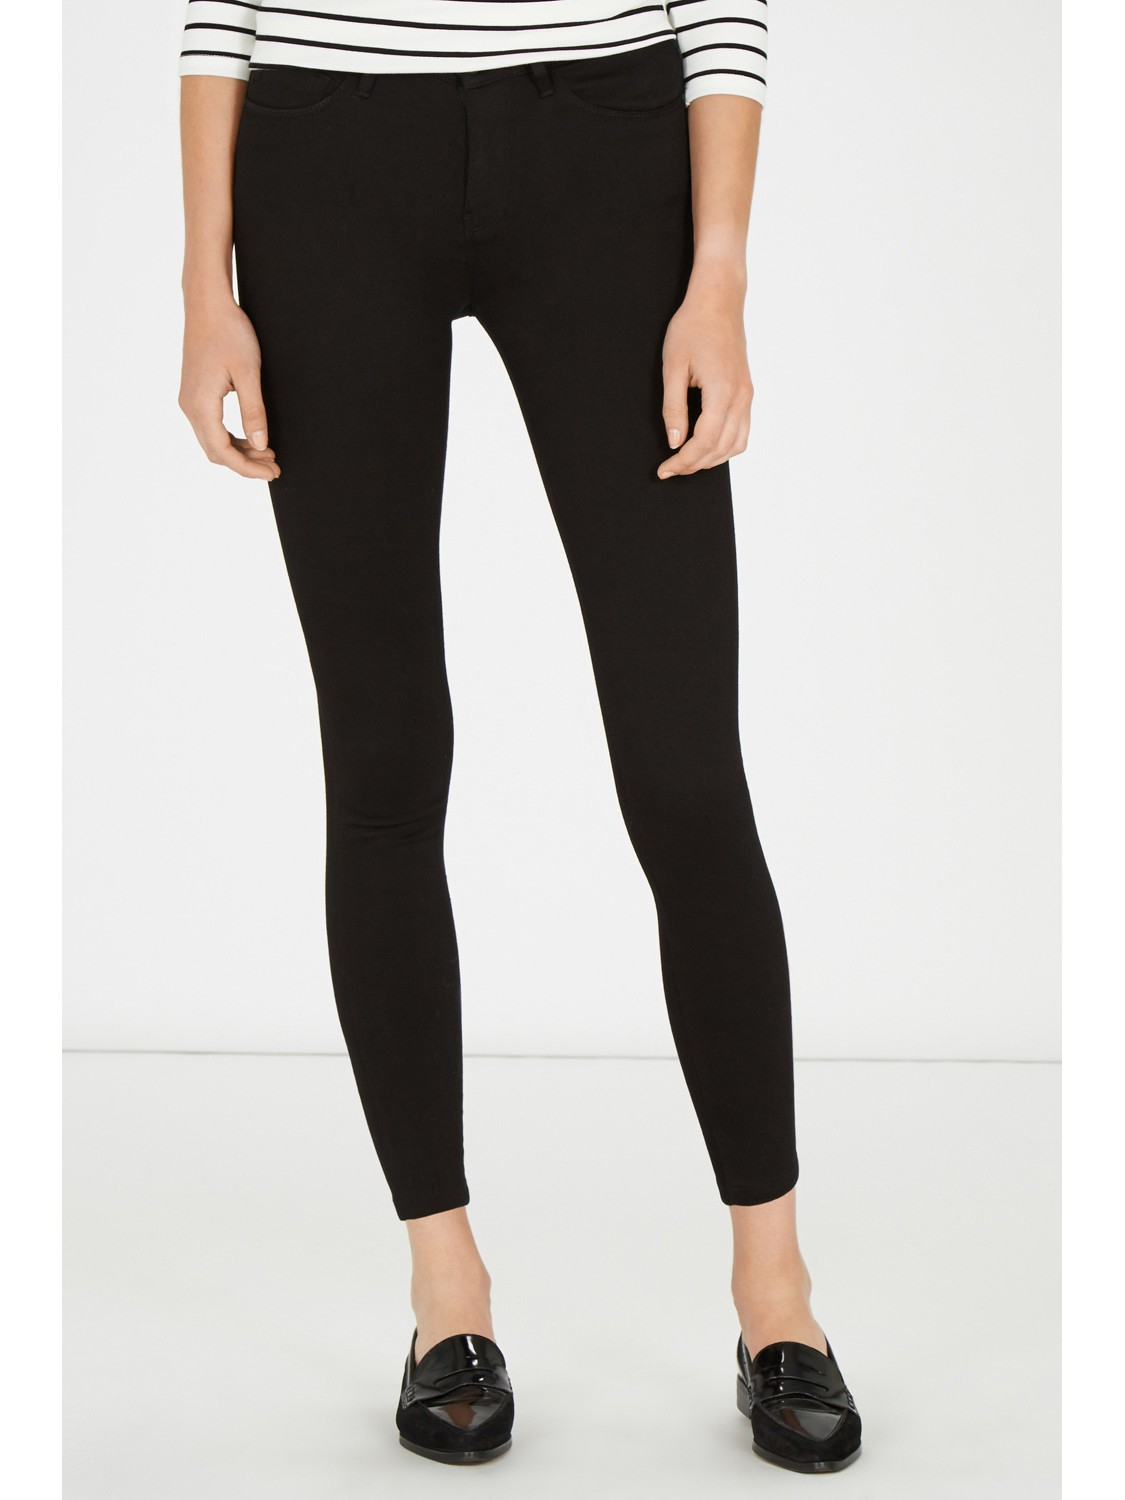 Warehouse Powerhold Skinny Jeans in Black | Lyst